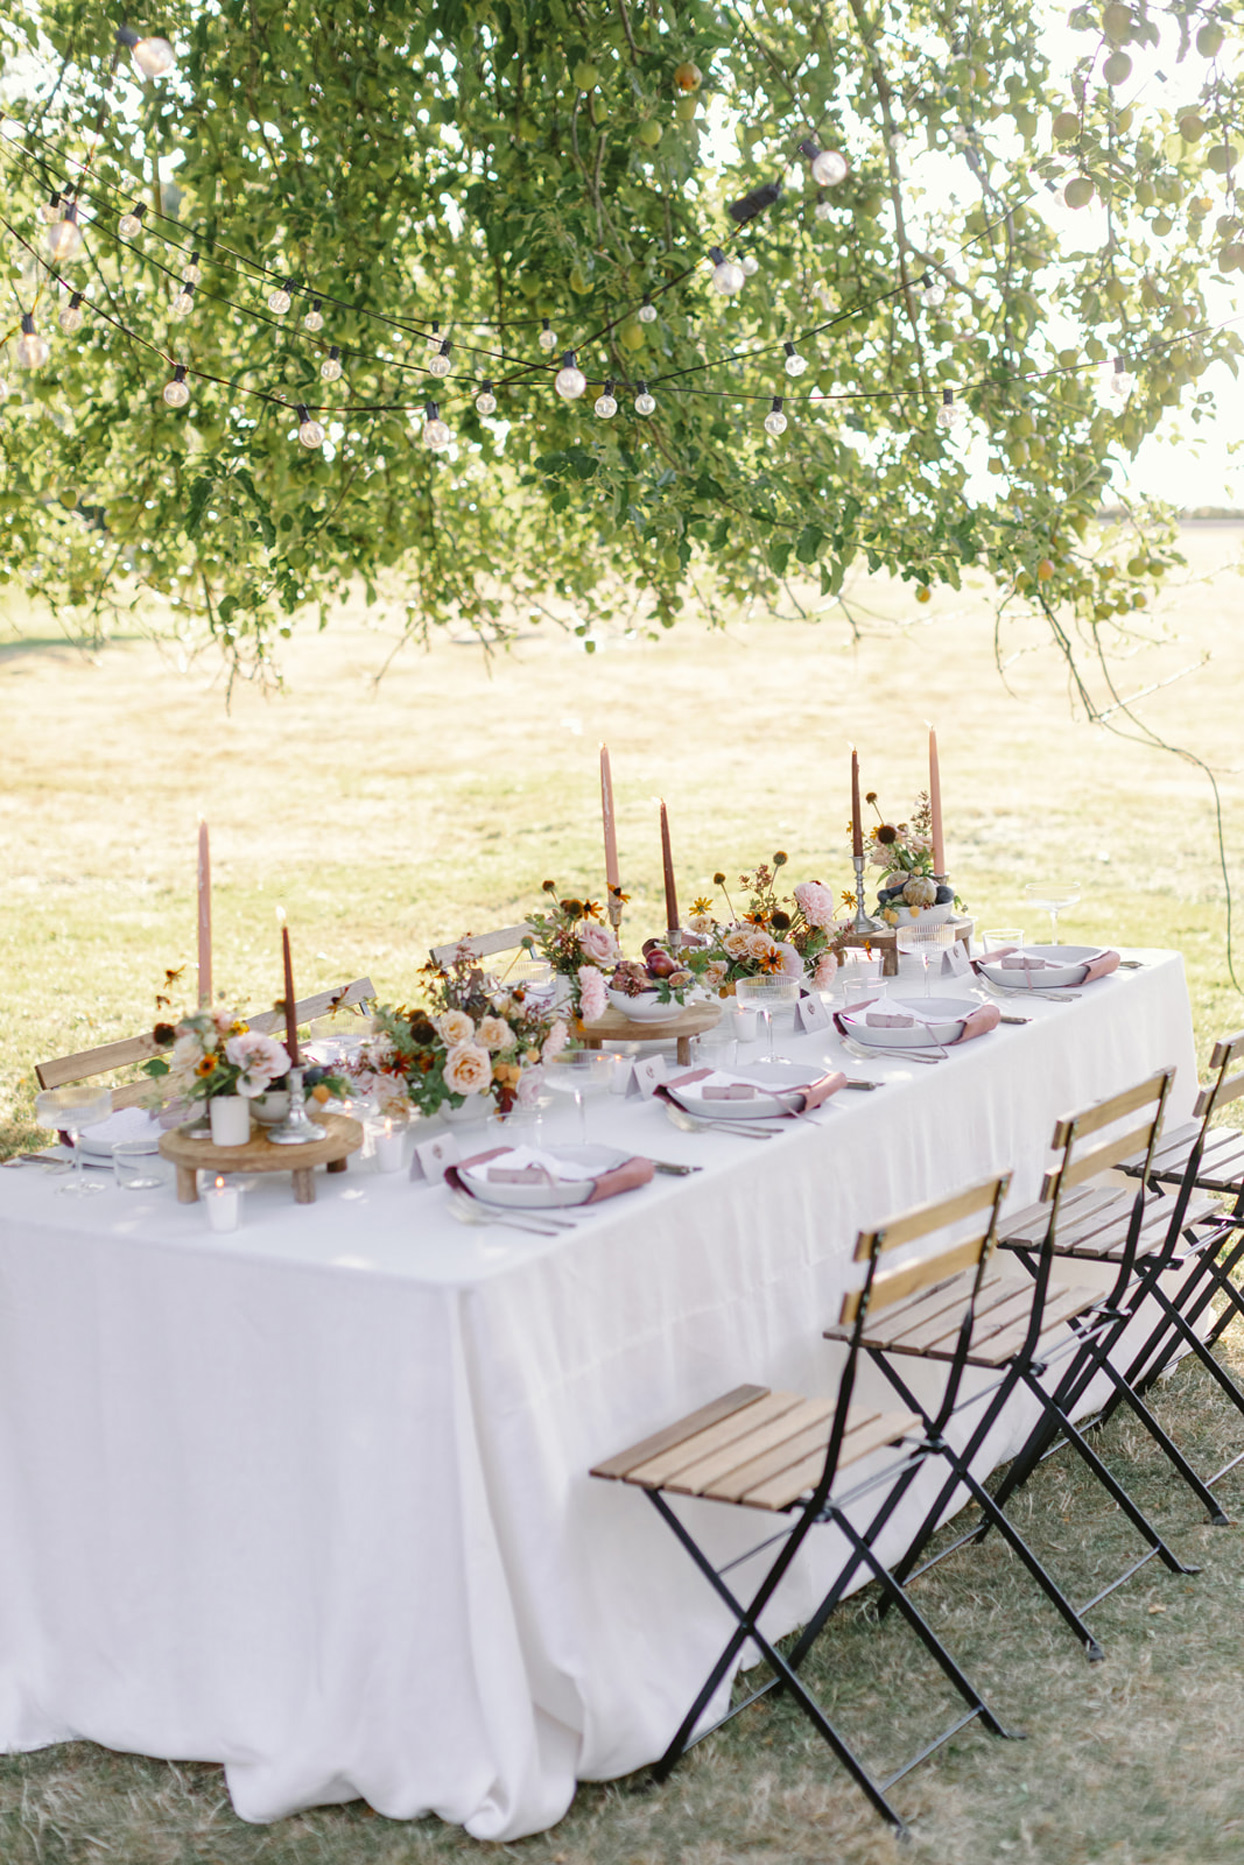 dinner table set with pink flowers and candles